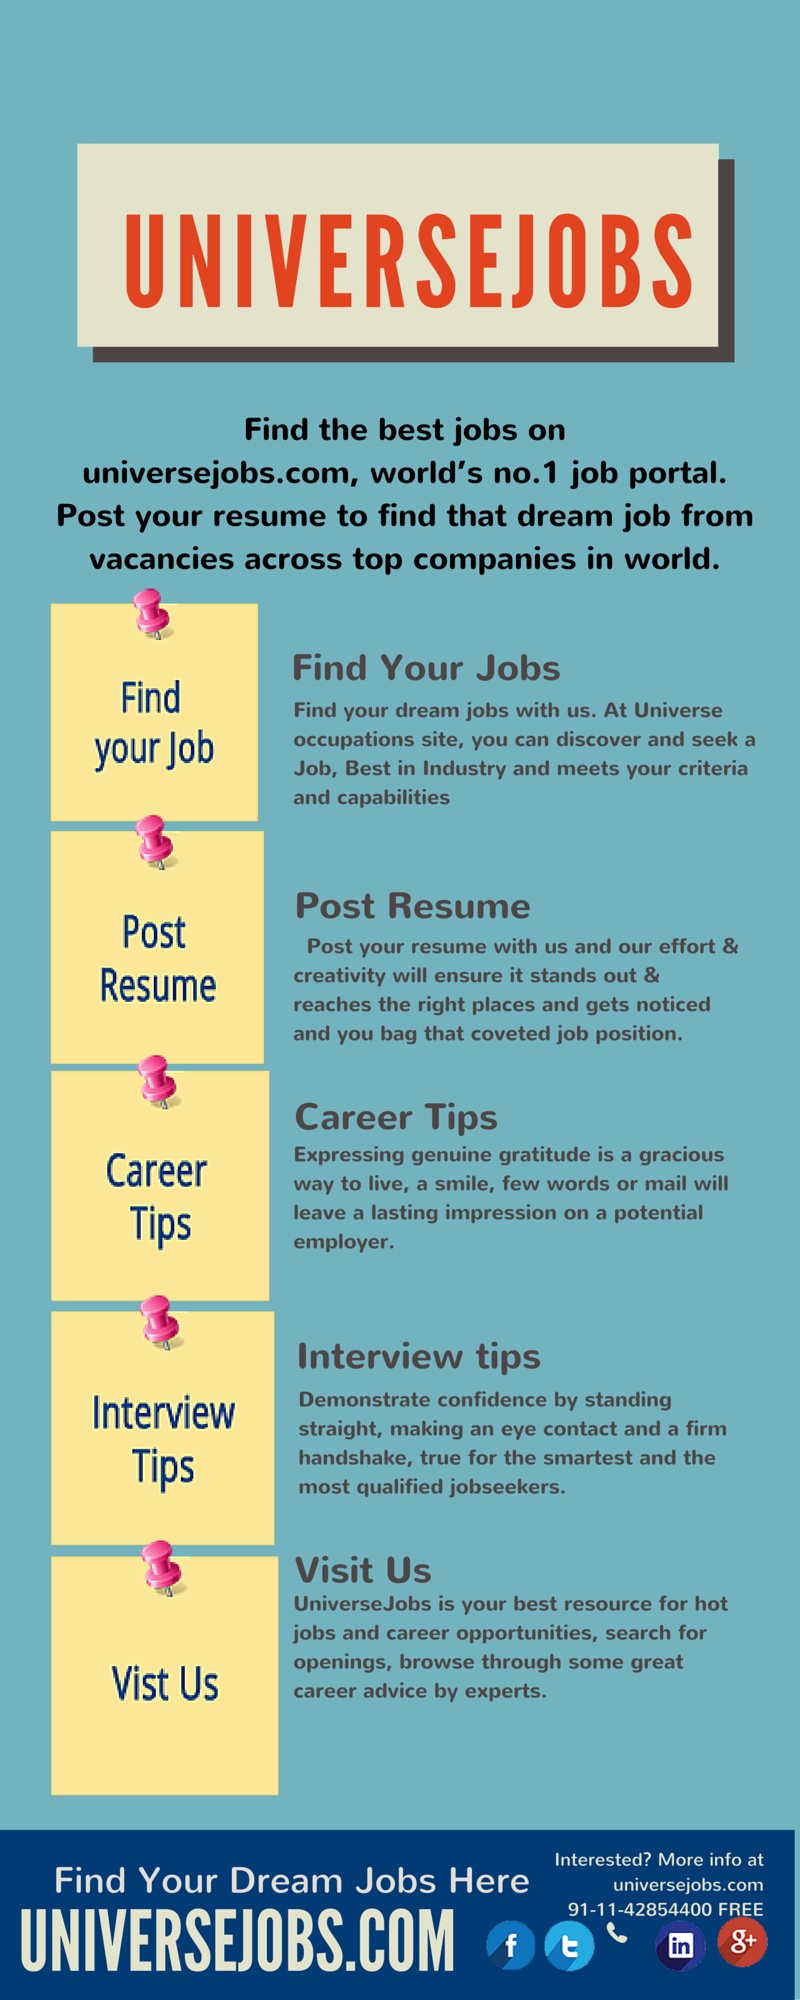 Post Resume Brilliant Post Your Resume With Us And Our Effort & Creativity Will Ensure It